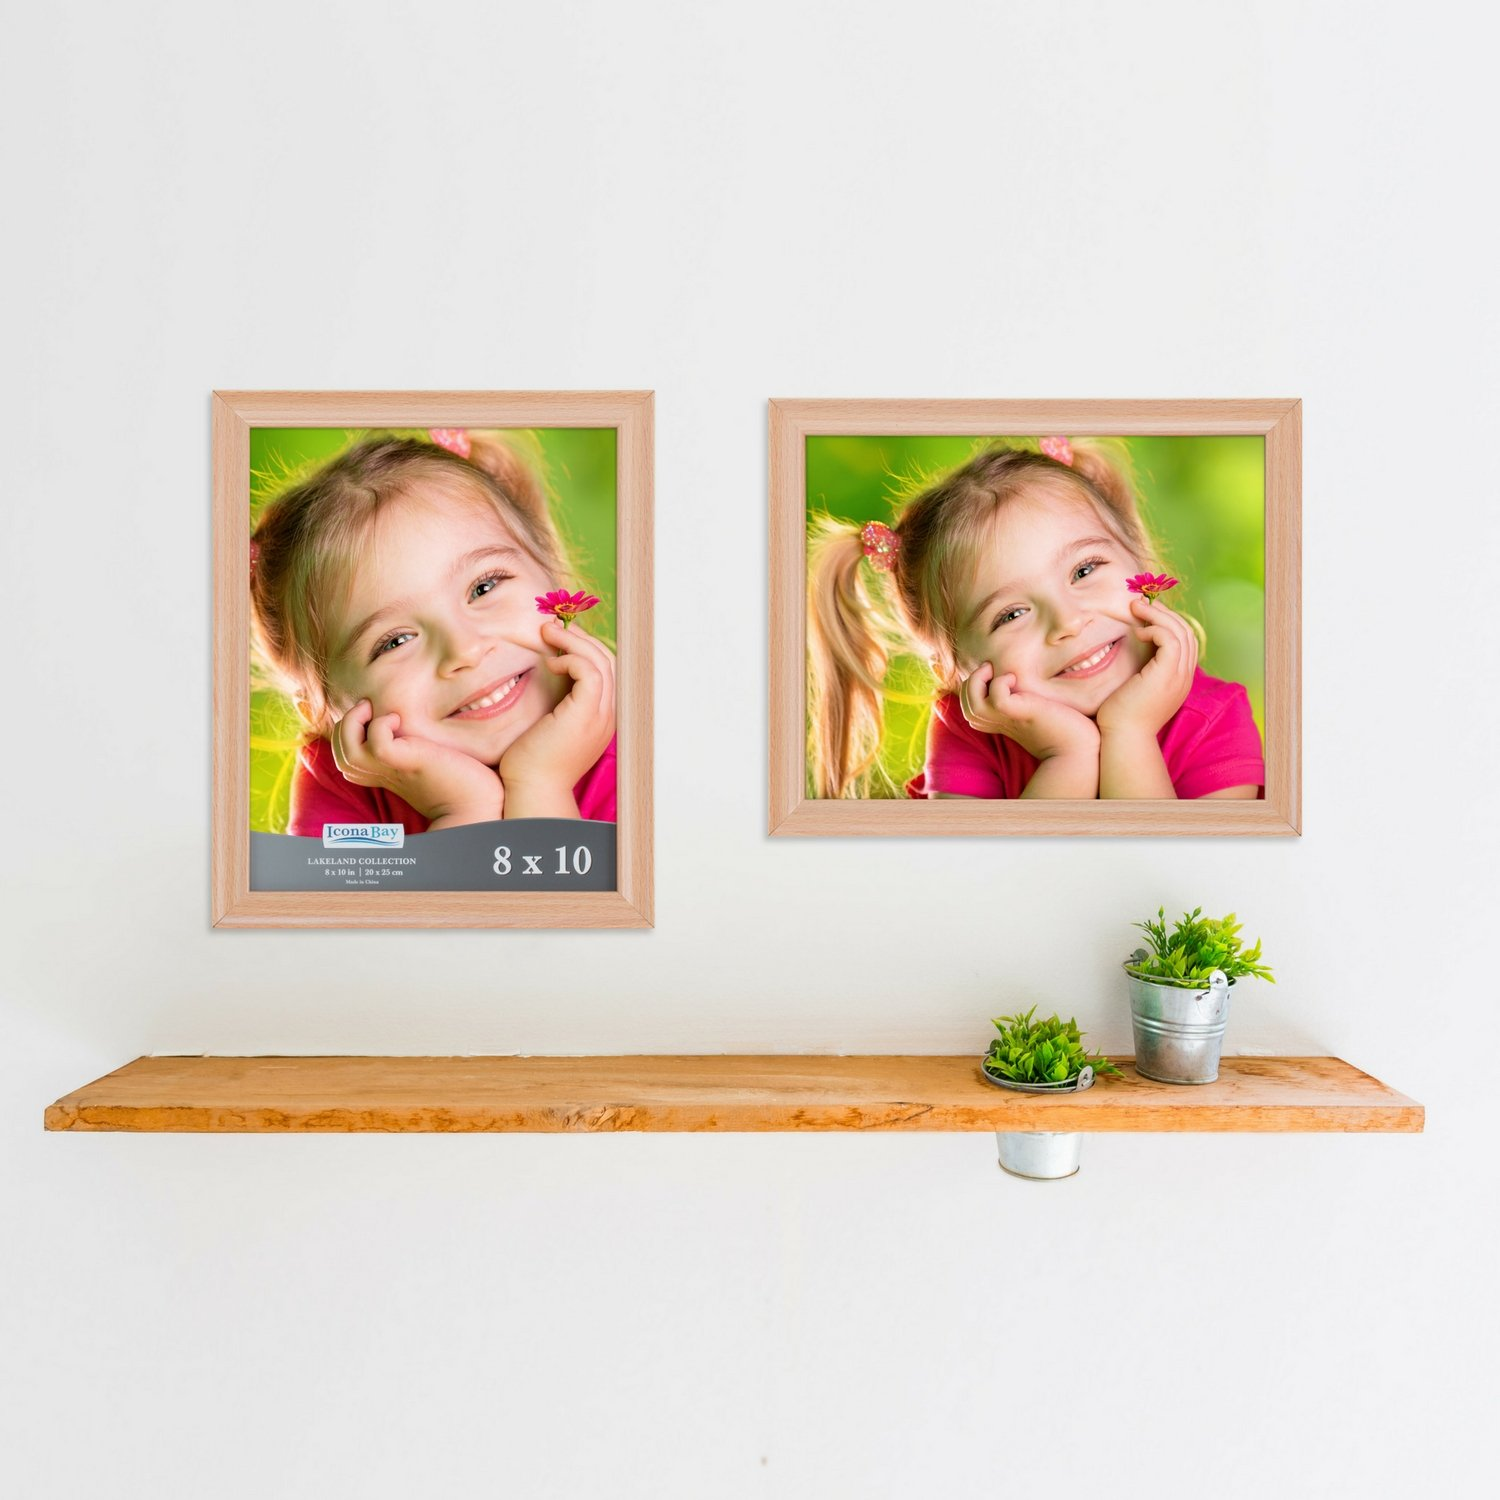 Icona Bay 8 by 10 Inch Picture Frames (8x10, 6 Pack, Beechwood Finish), Photo Frame Set For Wall Hang or Table Top, Lakeland Collection by Icona Bay (Image #8)